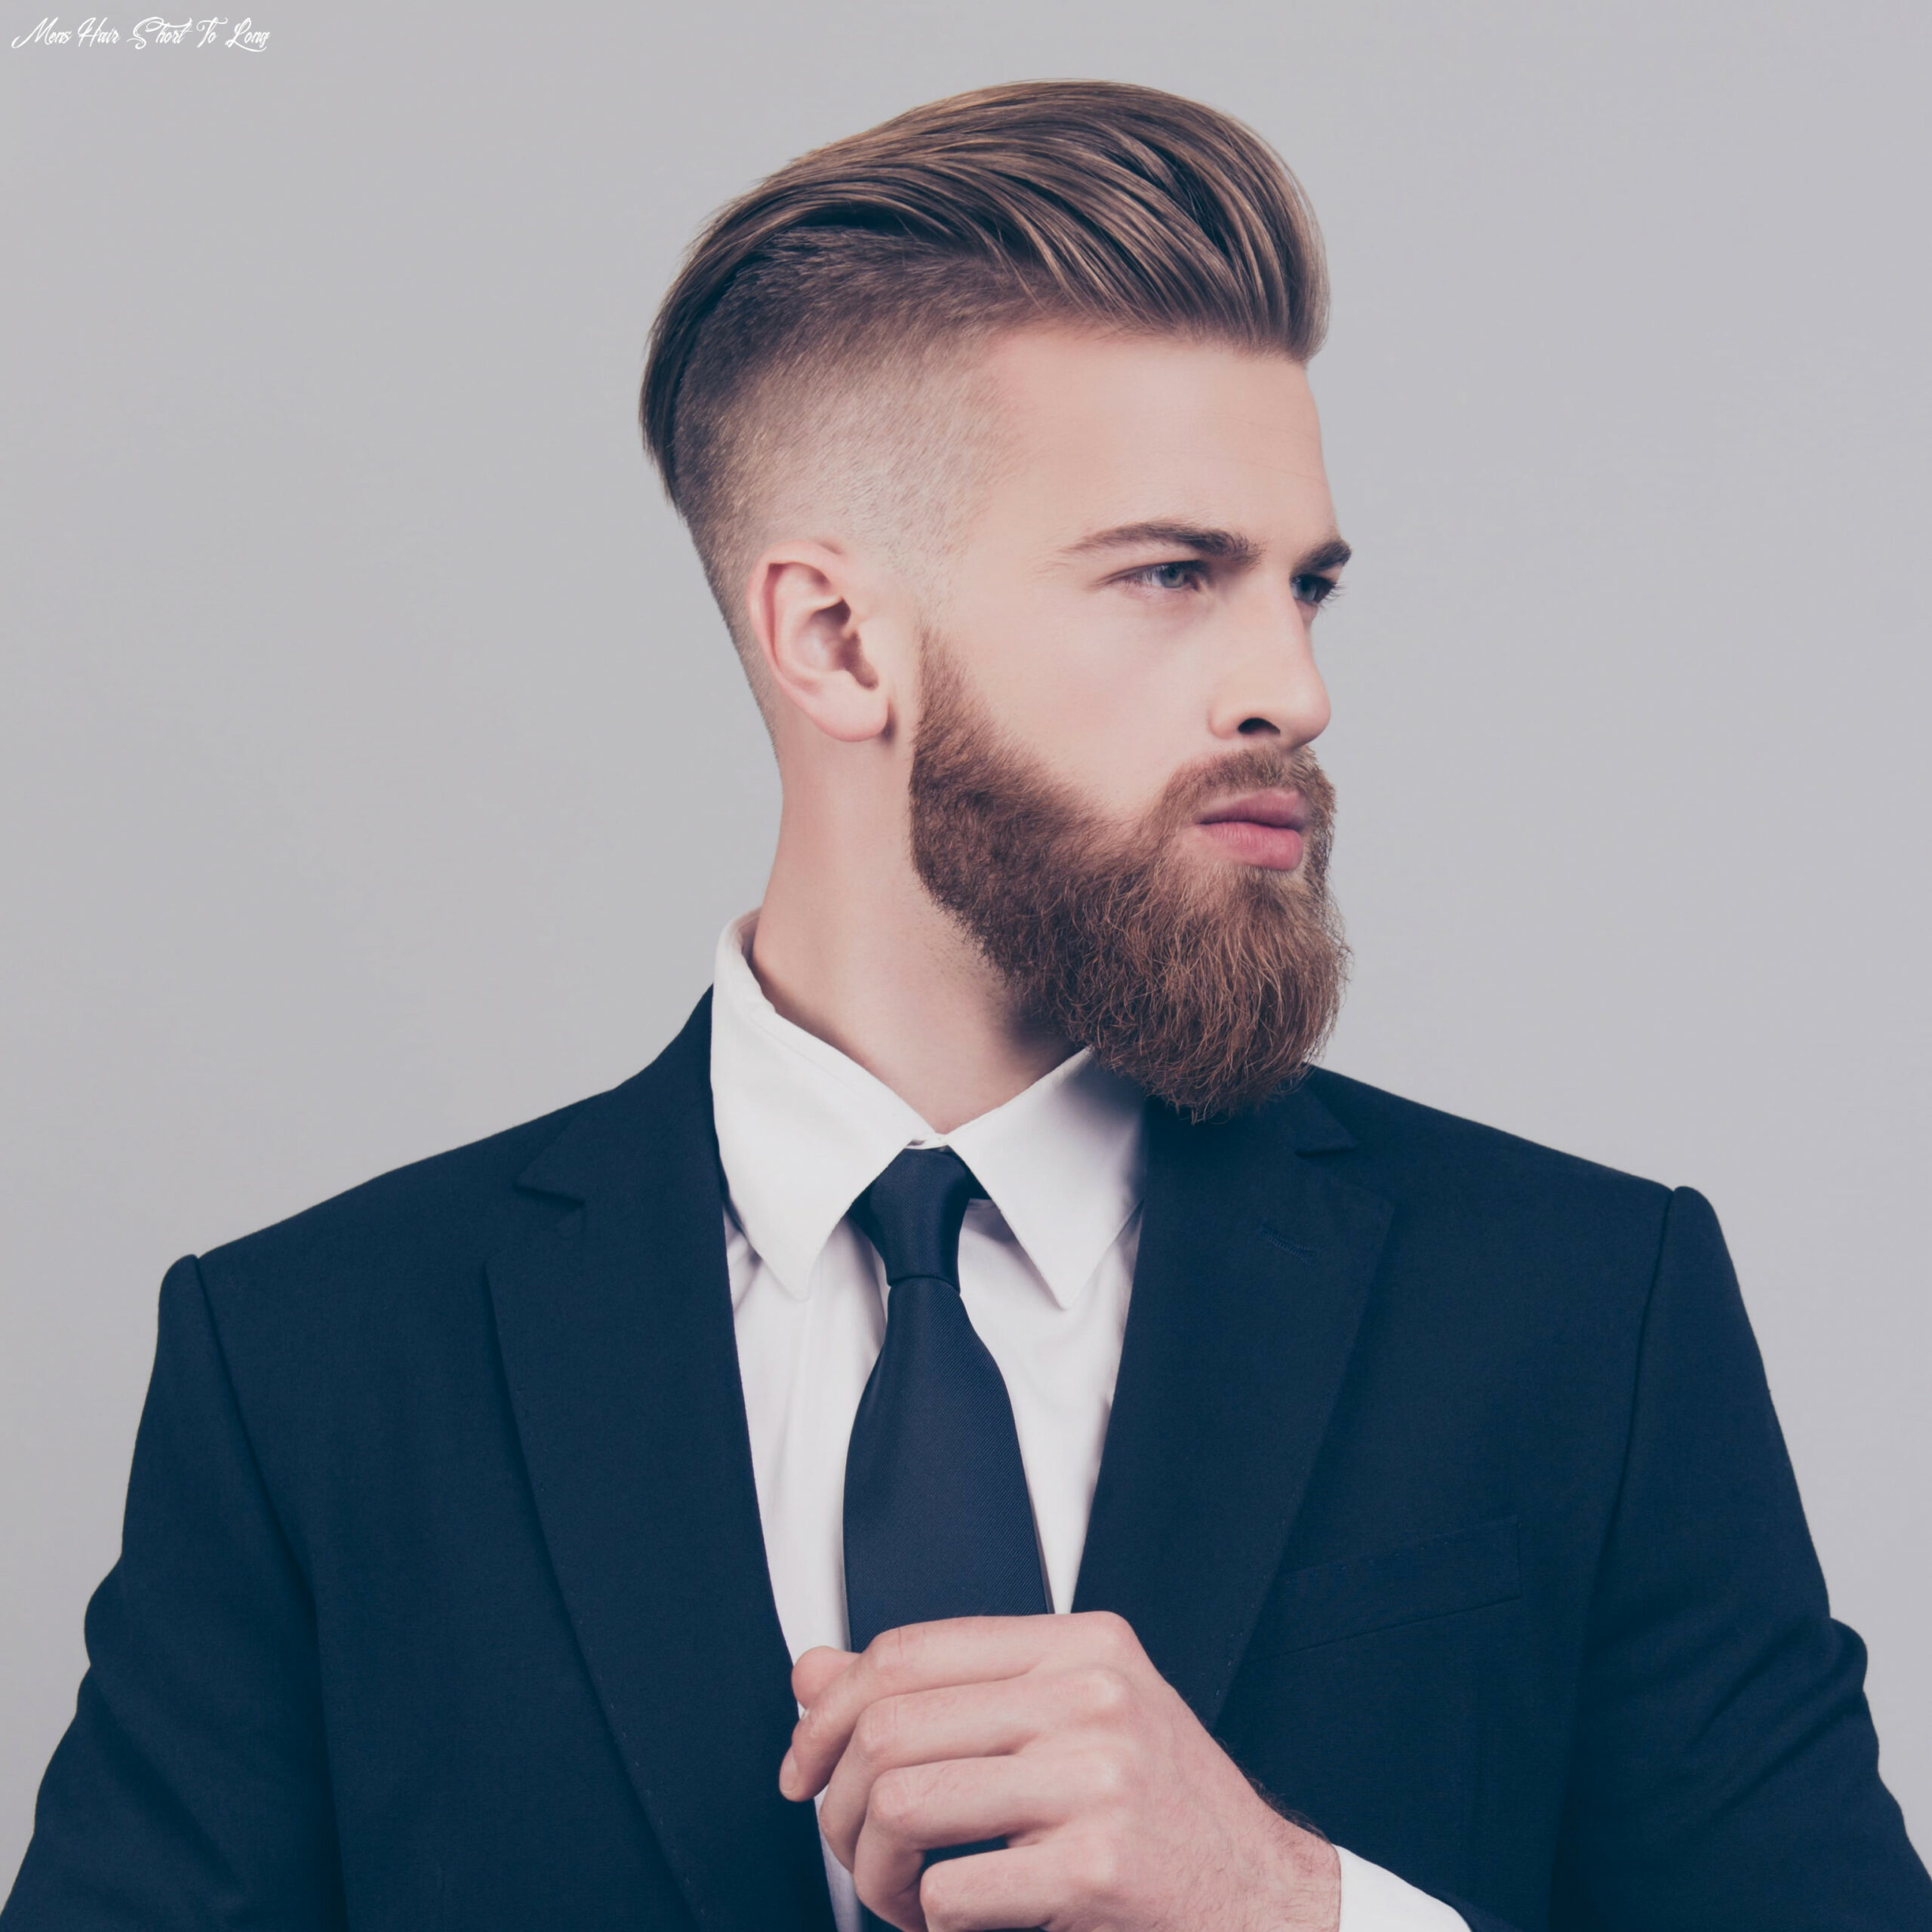 11 ivy league haircut suggestions styling tips & gallery mens hair short to long